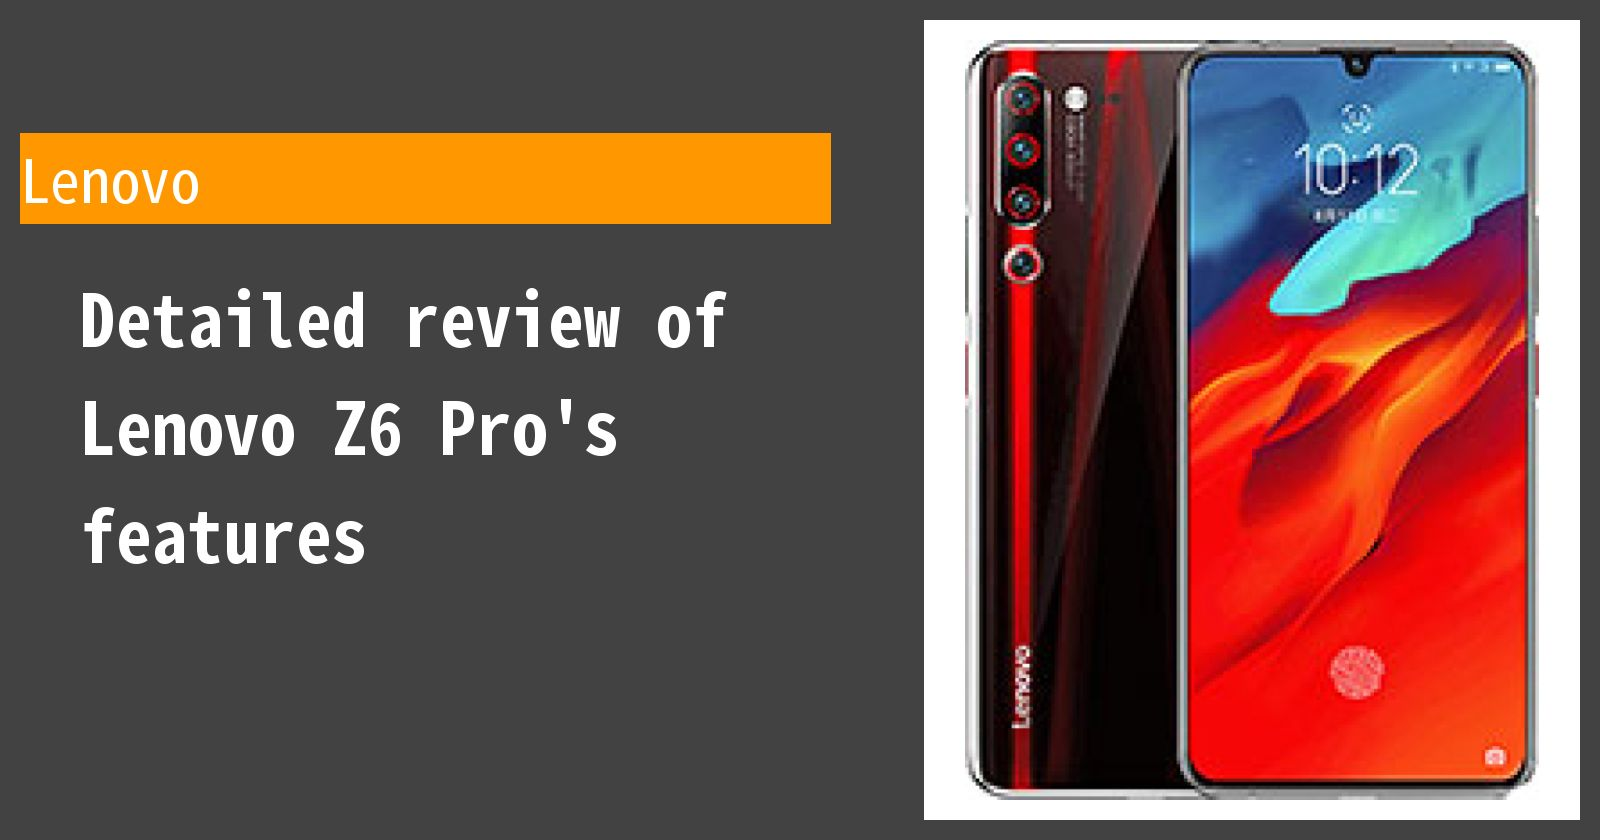 Detailed review of Lenovo Z6 Pro's features